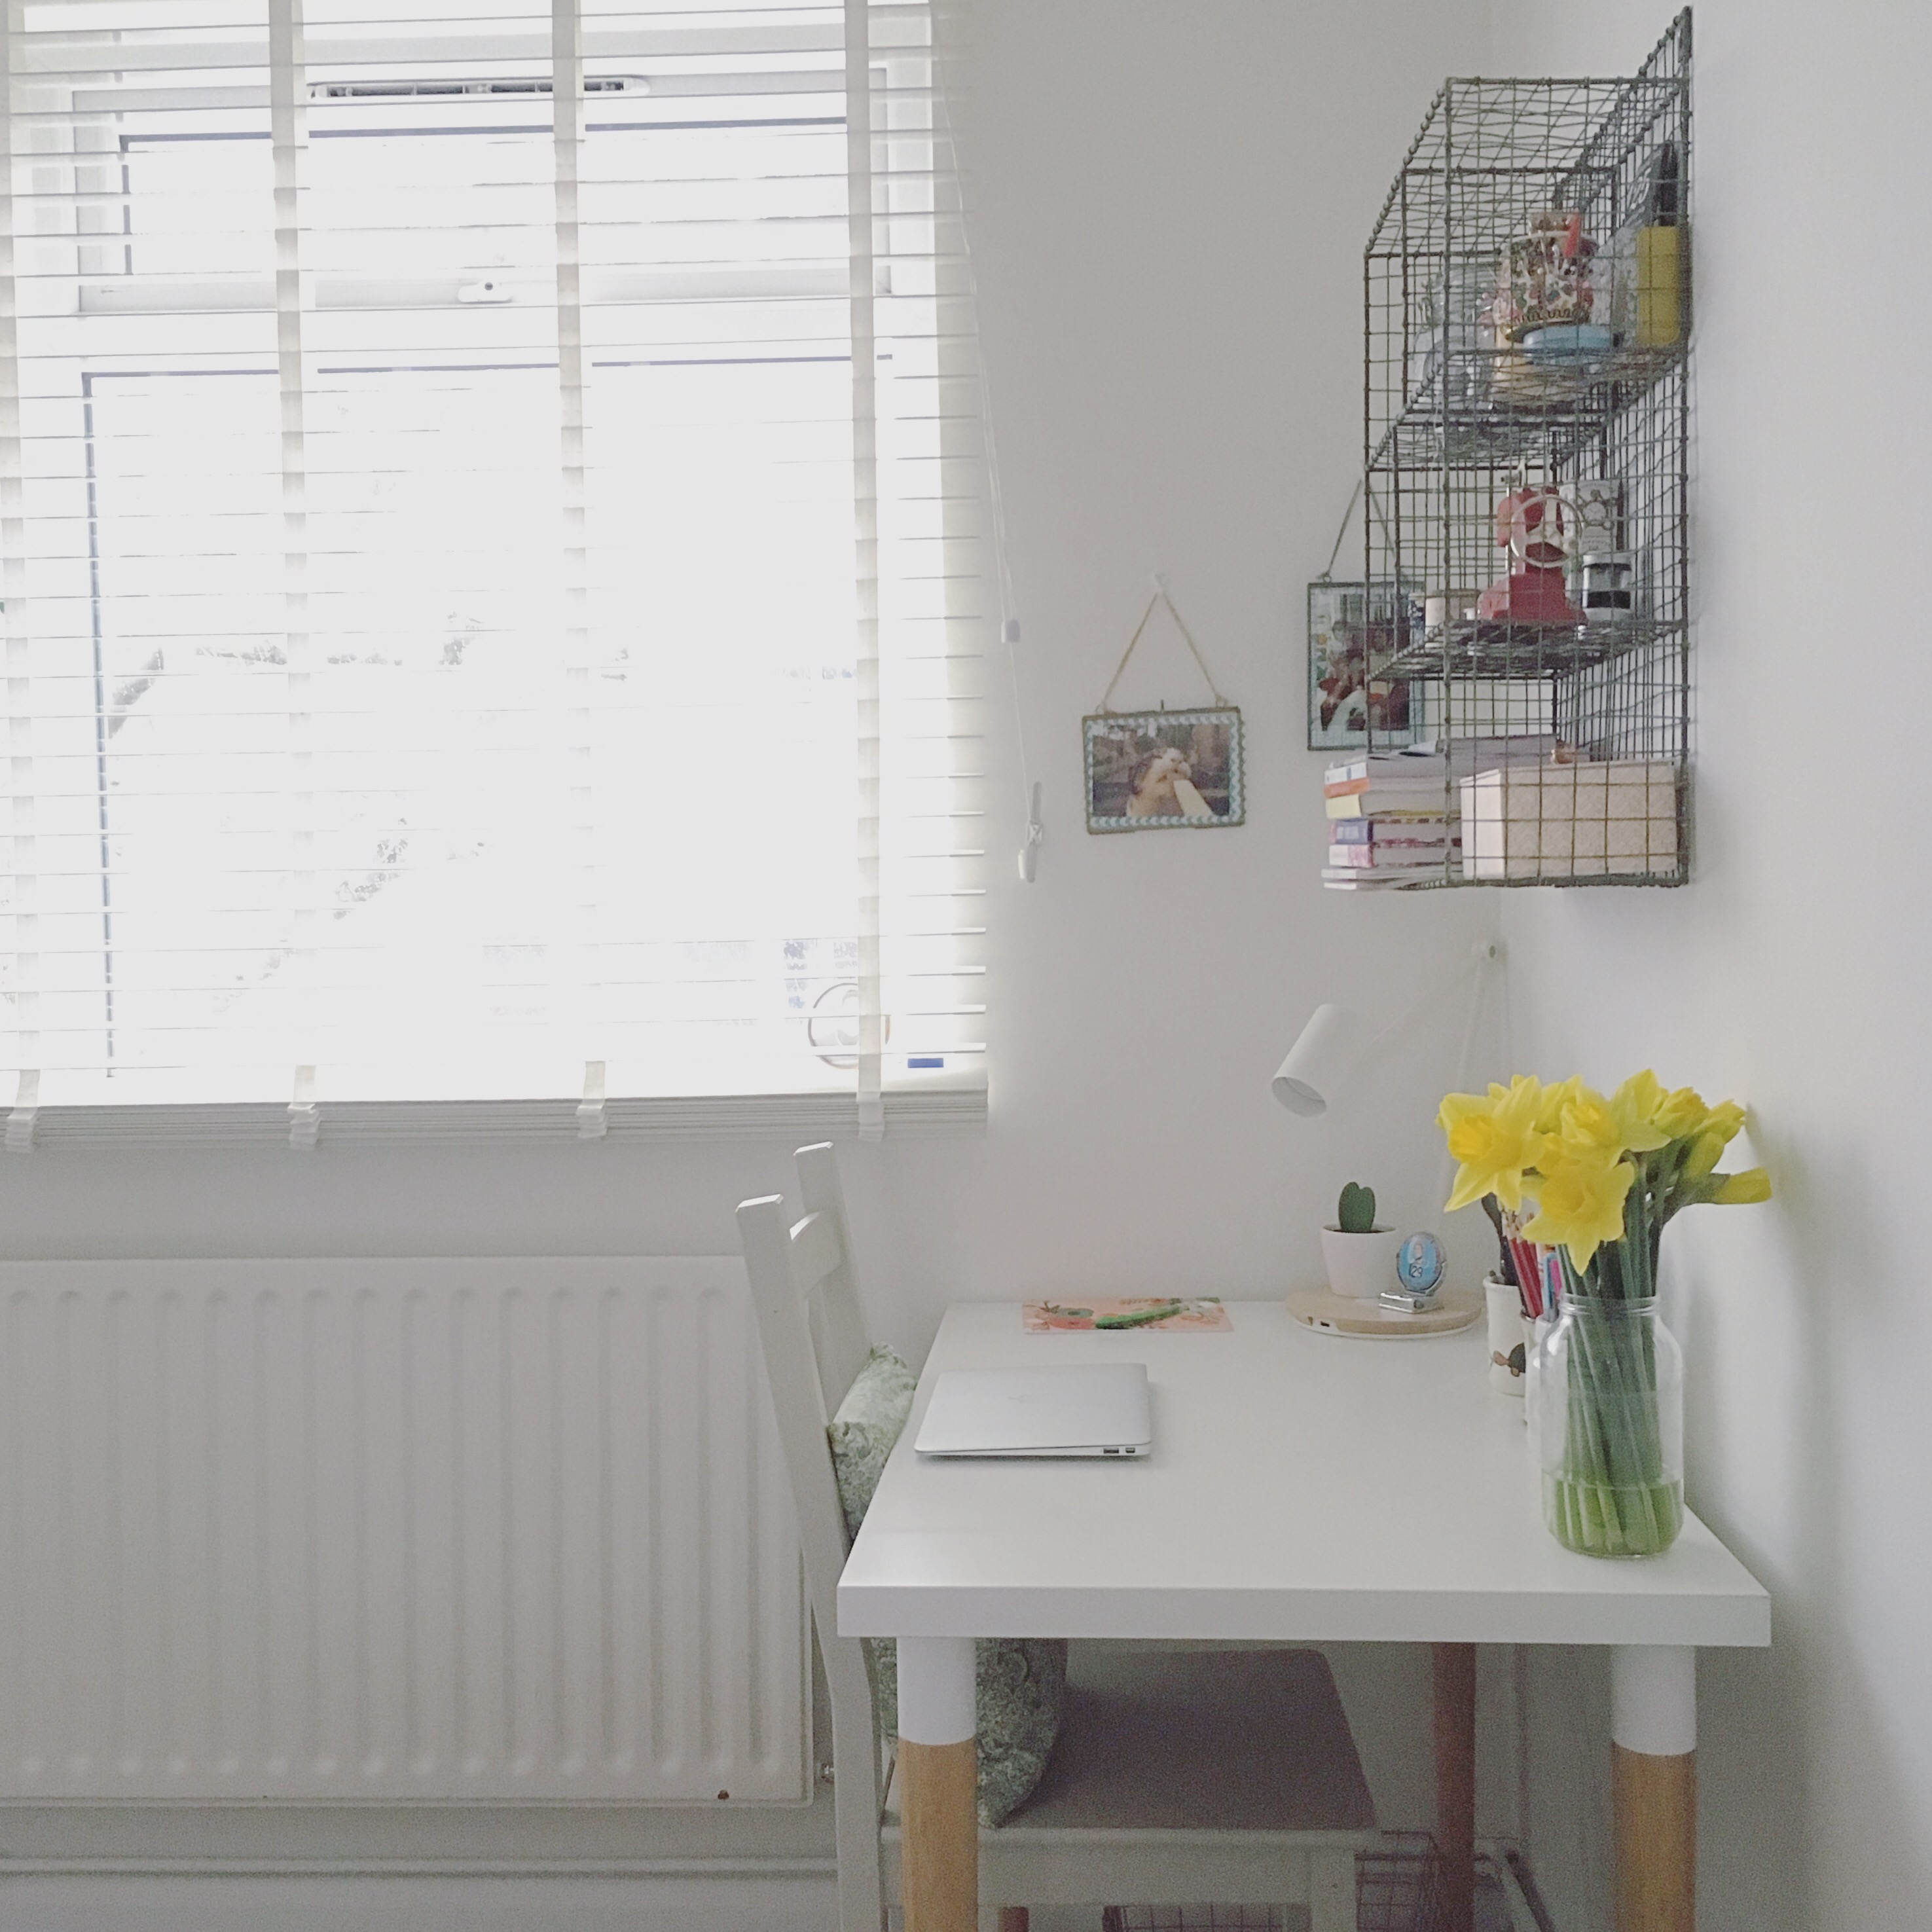 Sewing Room Designs: Small Sewing Space Ideas